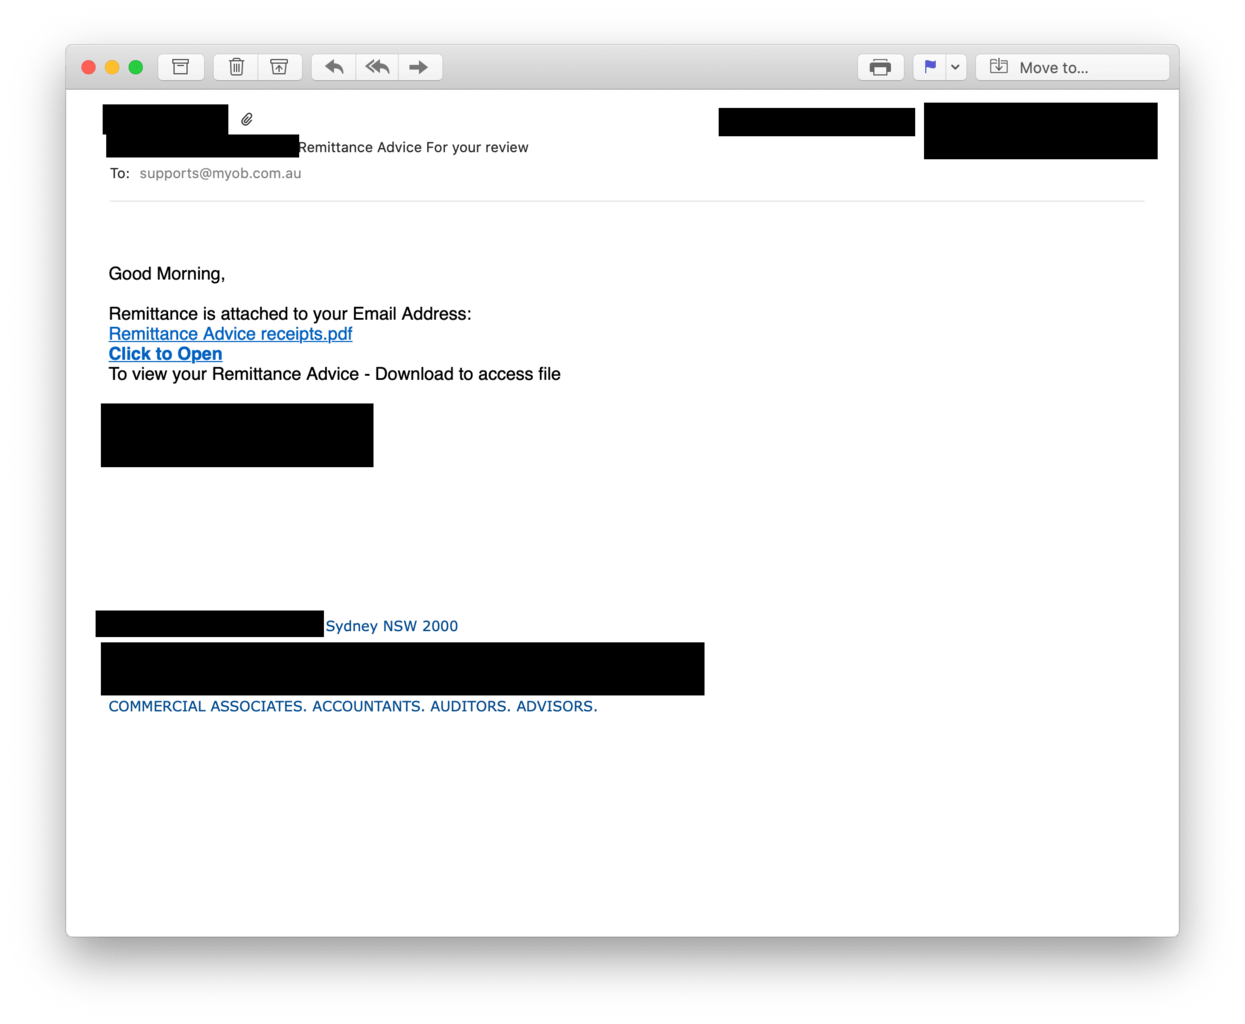 The initial phishing email leading to a fake Microsoft login page.